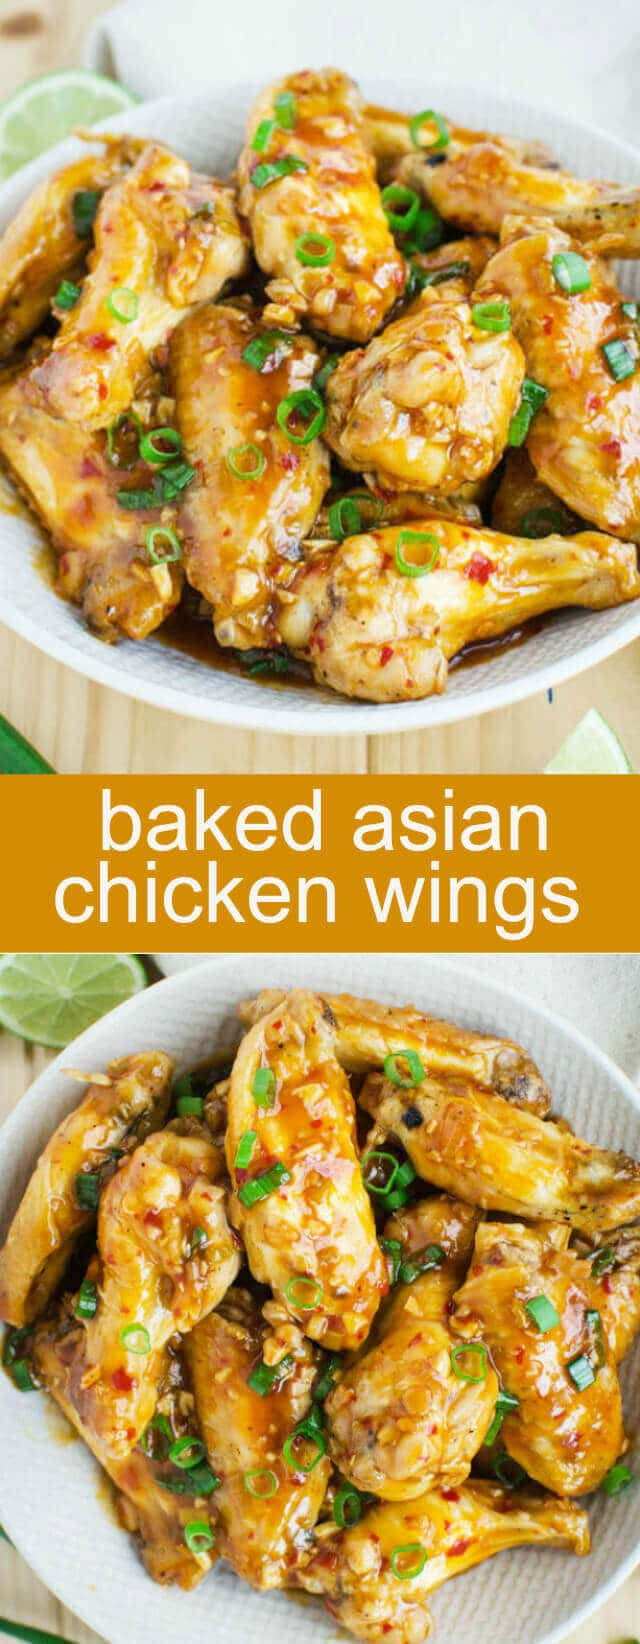 Baked Asian Chicken Wings {A Fun Tangy Appetizer} baked/ chicken/ wings Baked Asian Chicken Wings Recipe - Amazing chicken wings that are baked in an oven and coated with sweet savory and tangy Asian sauce.